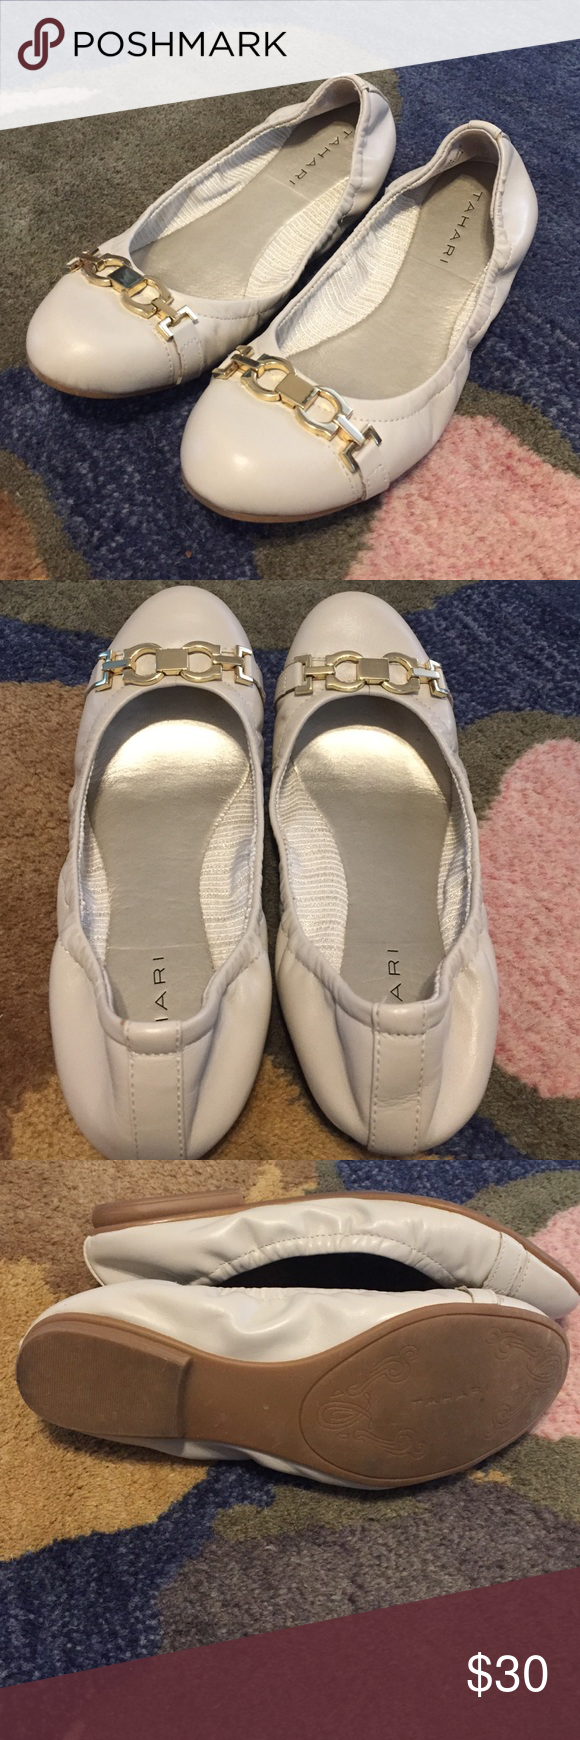 TAHARI 7.5 Leather Ballet Flats Bone Cream Taupe Leather Ballet Flats by TAHARI. Ladies size 7.5. Light Cream Taupe Color (off-white). Hardware on the front is a very pale gold, can almost be confused for silver if you wanted. Only worn one Easter (inside), barely any wear. Looks like new. Tahari Shoes Flats & Loafers